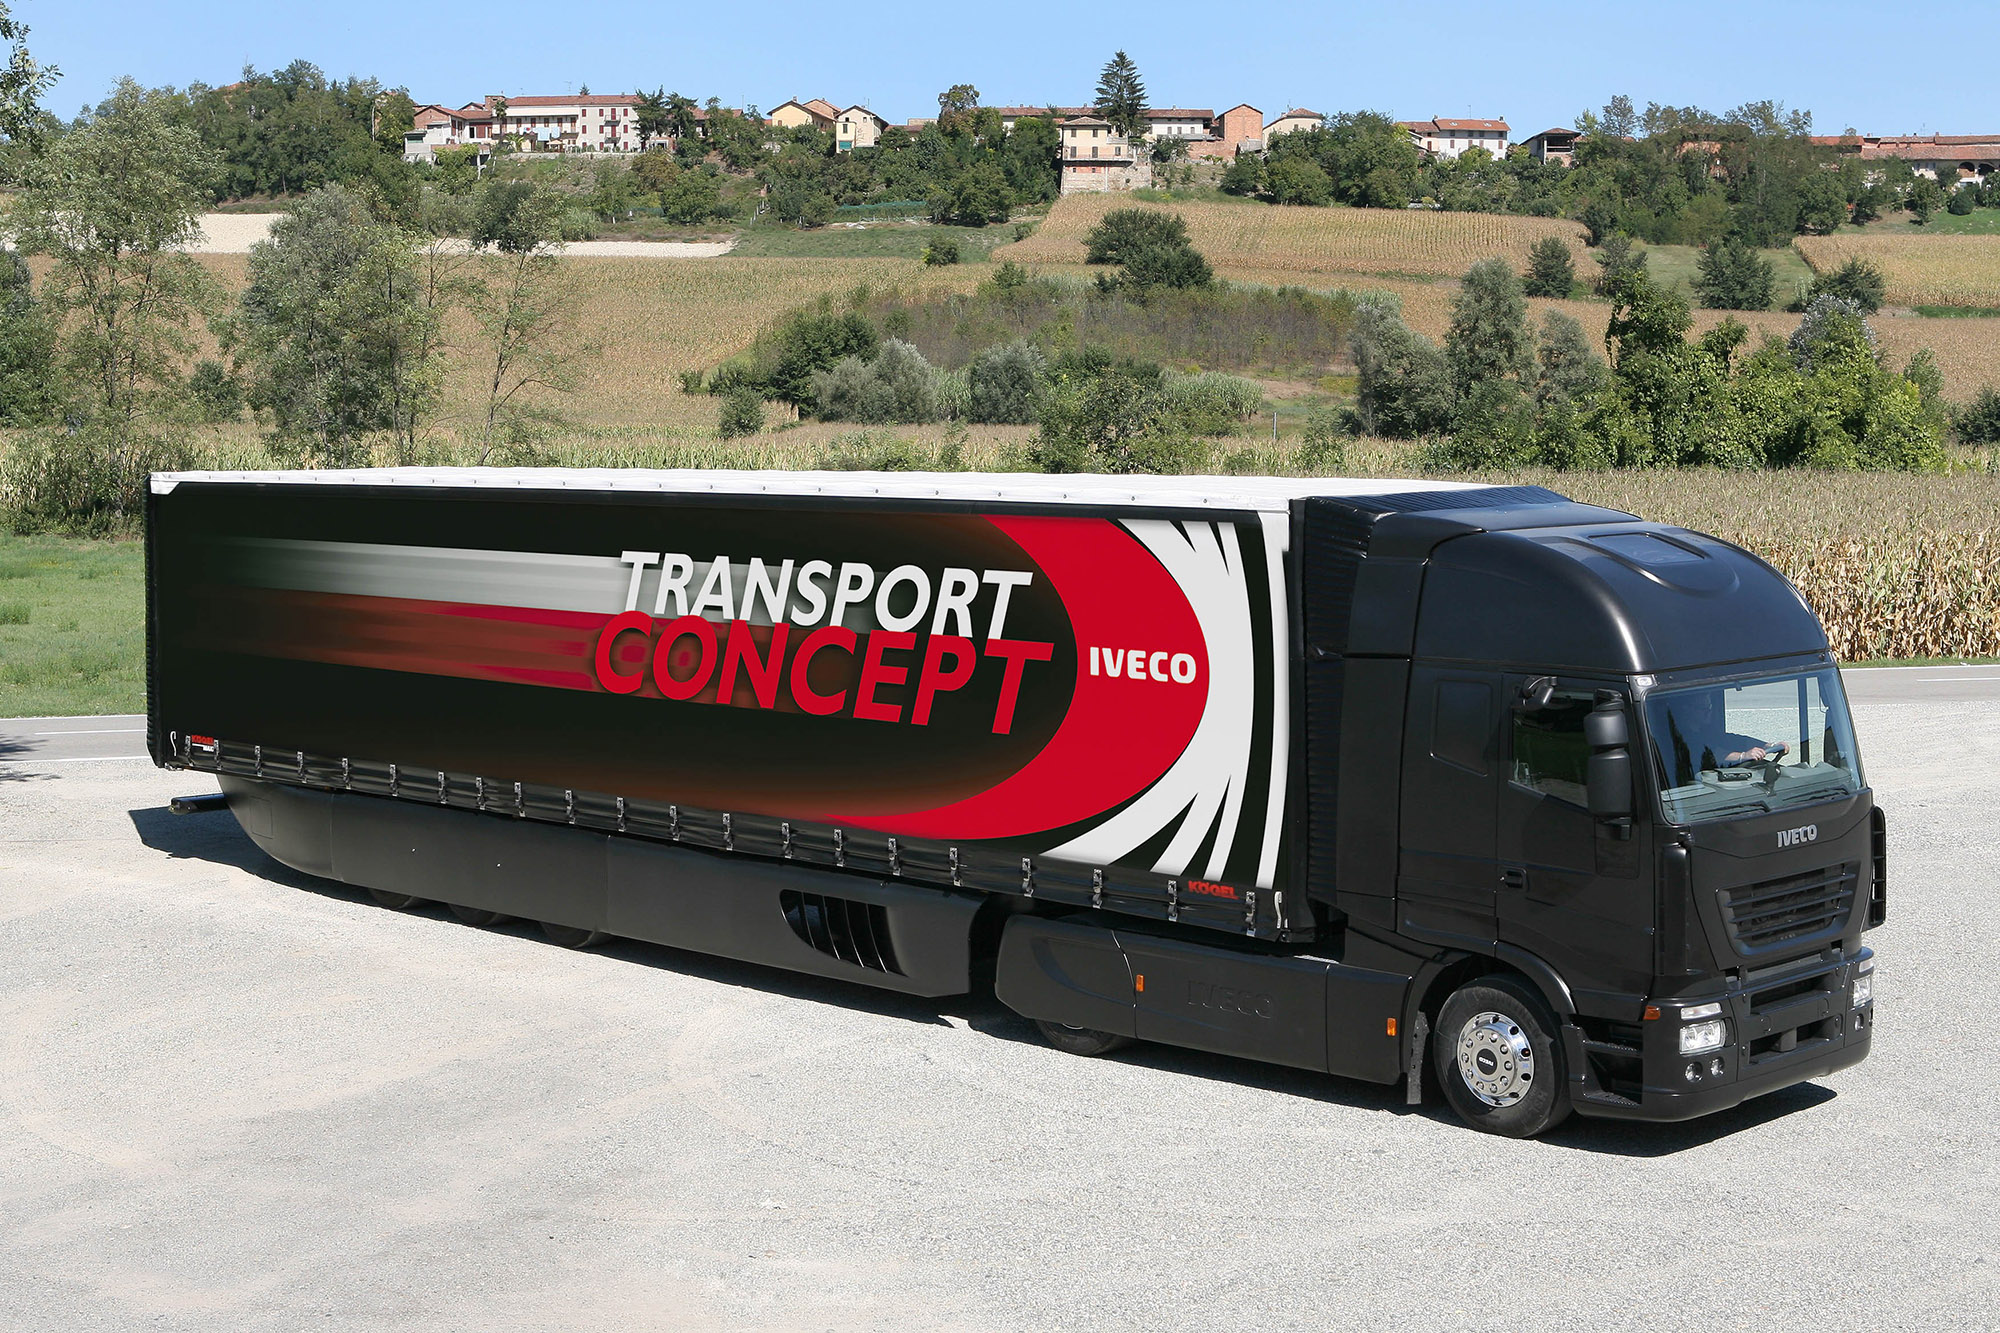 http://www.carsbase.com/photo/IVECO-Transport_Concept_mp165_pic_47306.jpg